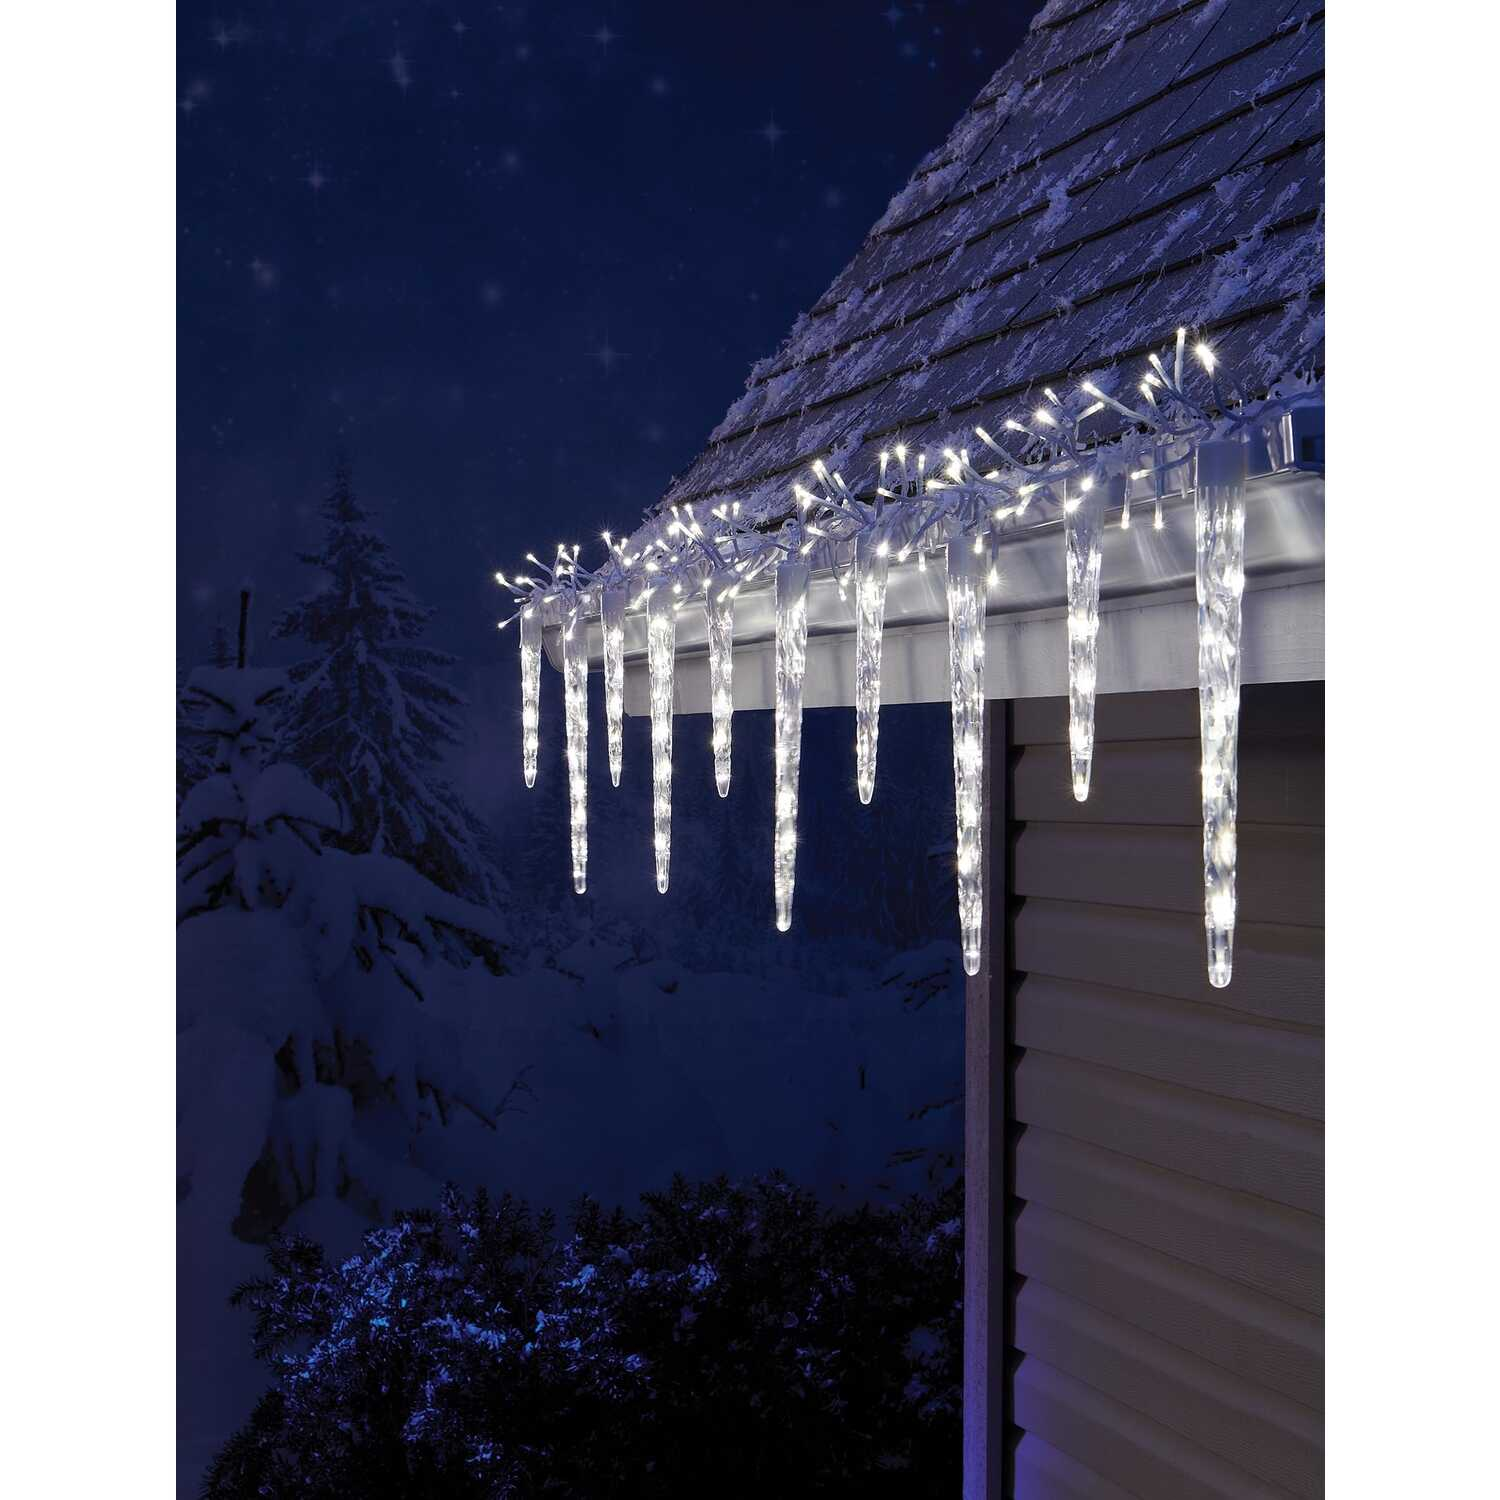 Celebrations  Euro  LED  Micro cluster with icicle-style reflectors  Light Set  Cool White  9 ft. 24